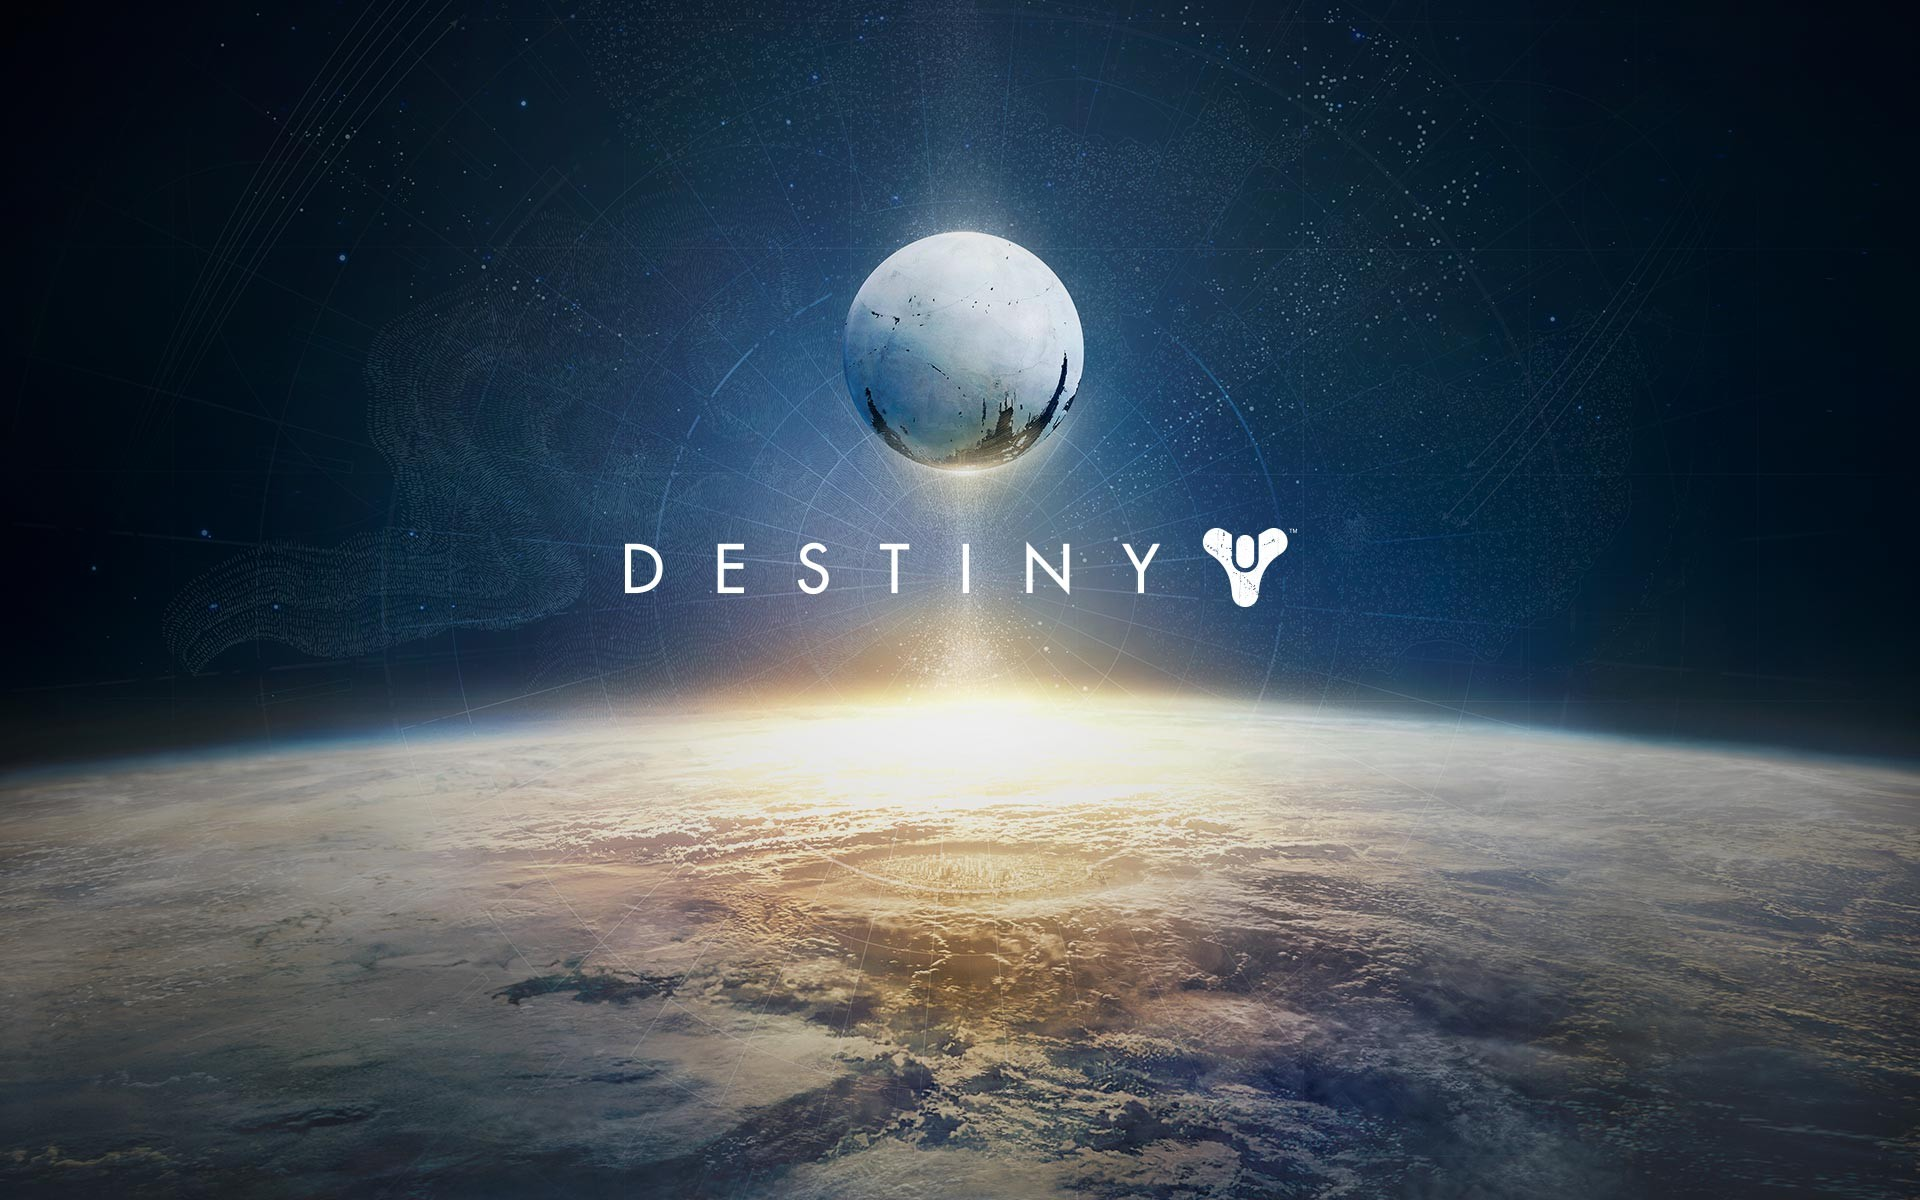 view original size. Tags: Destiny, Game, logo